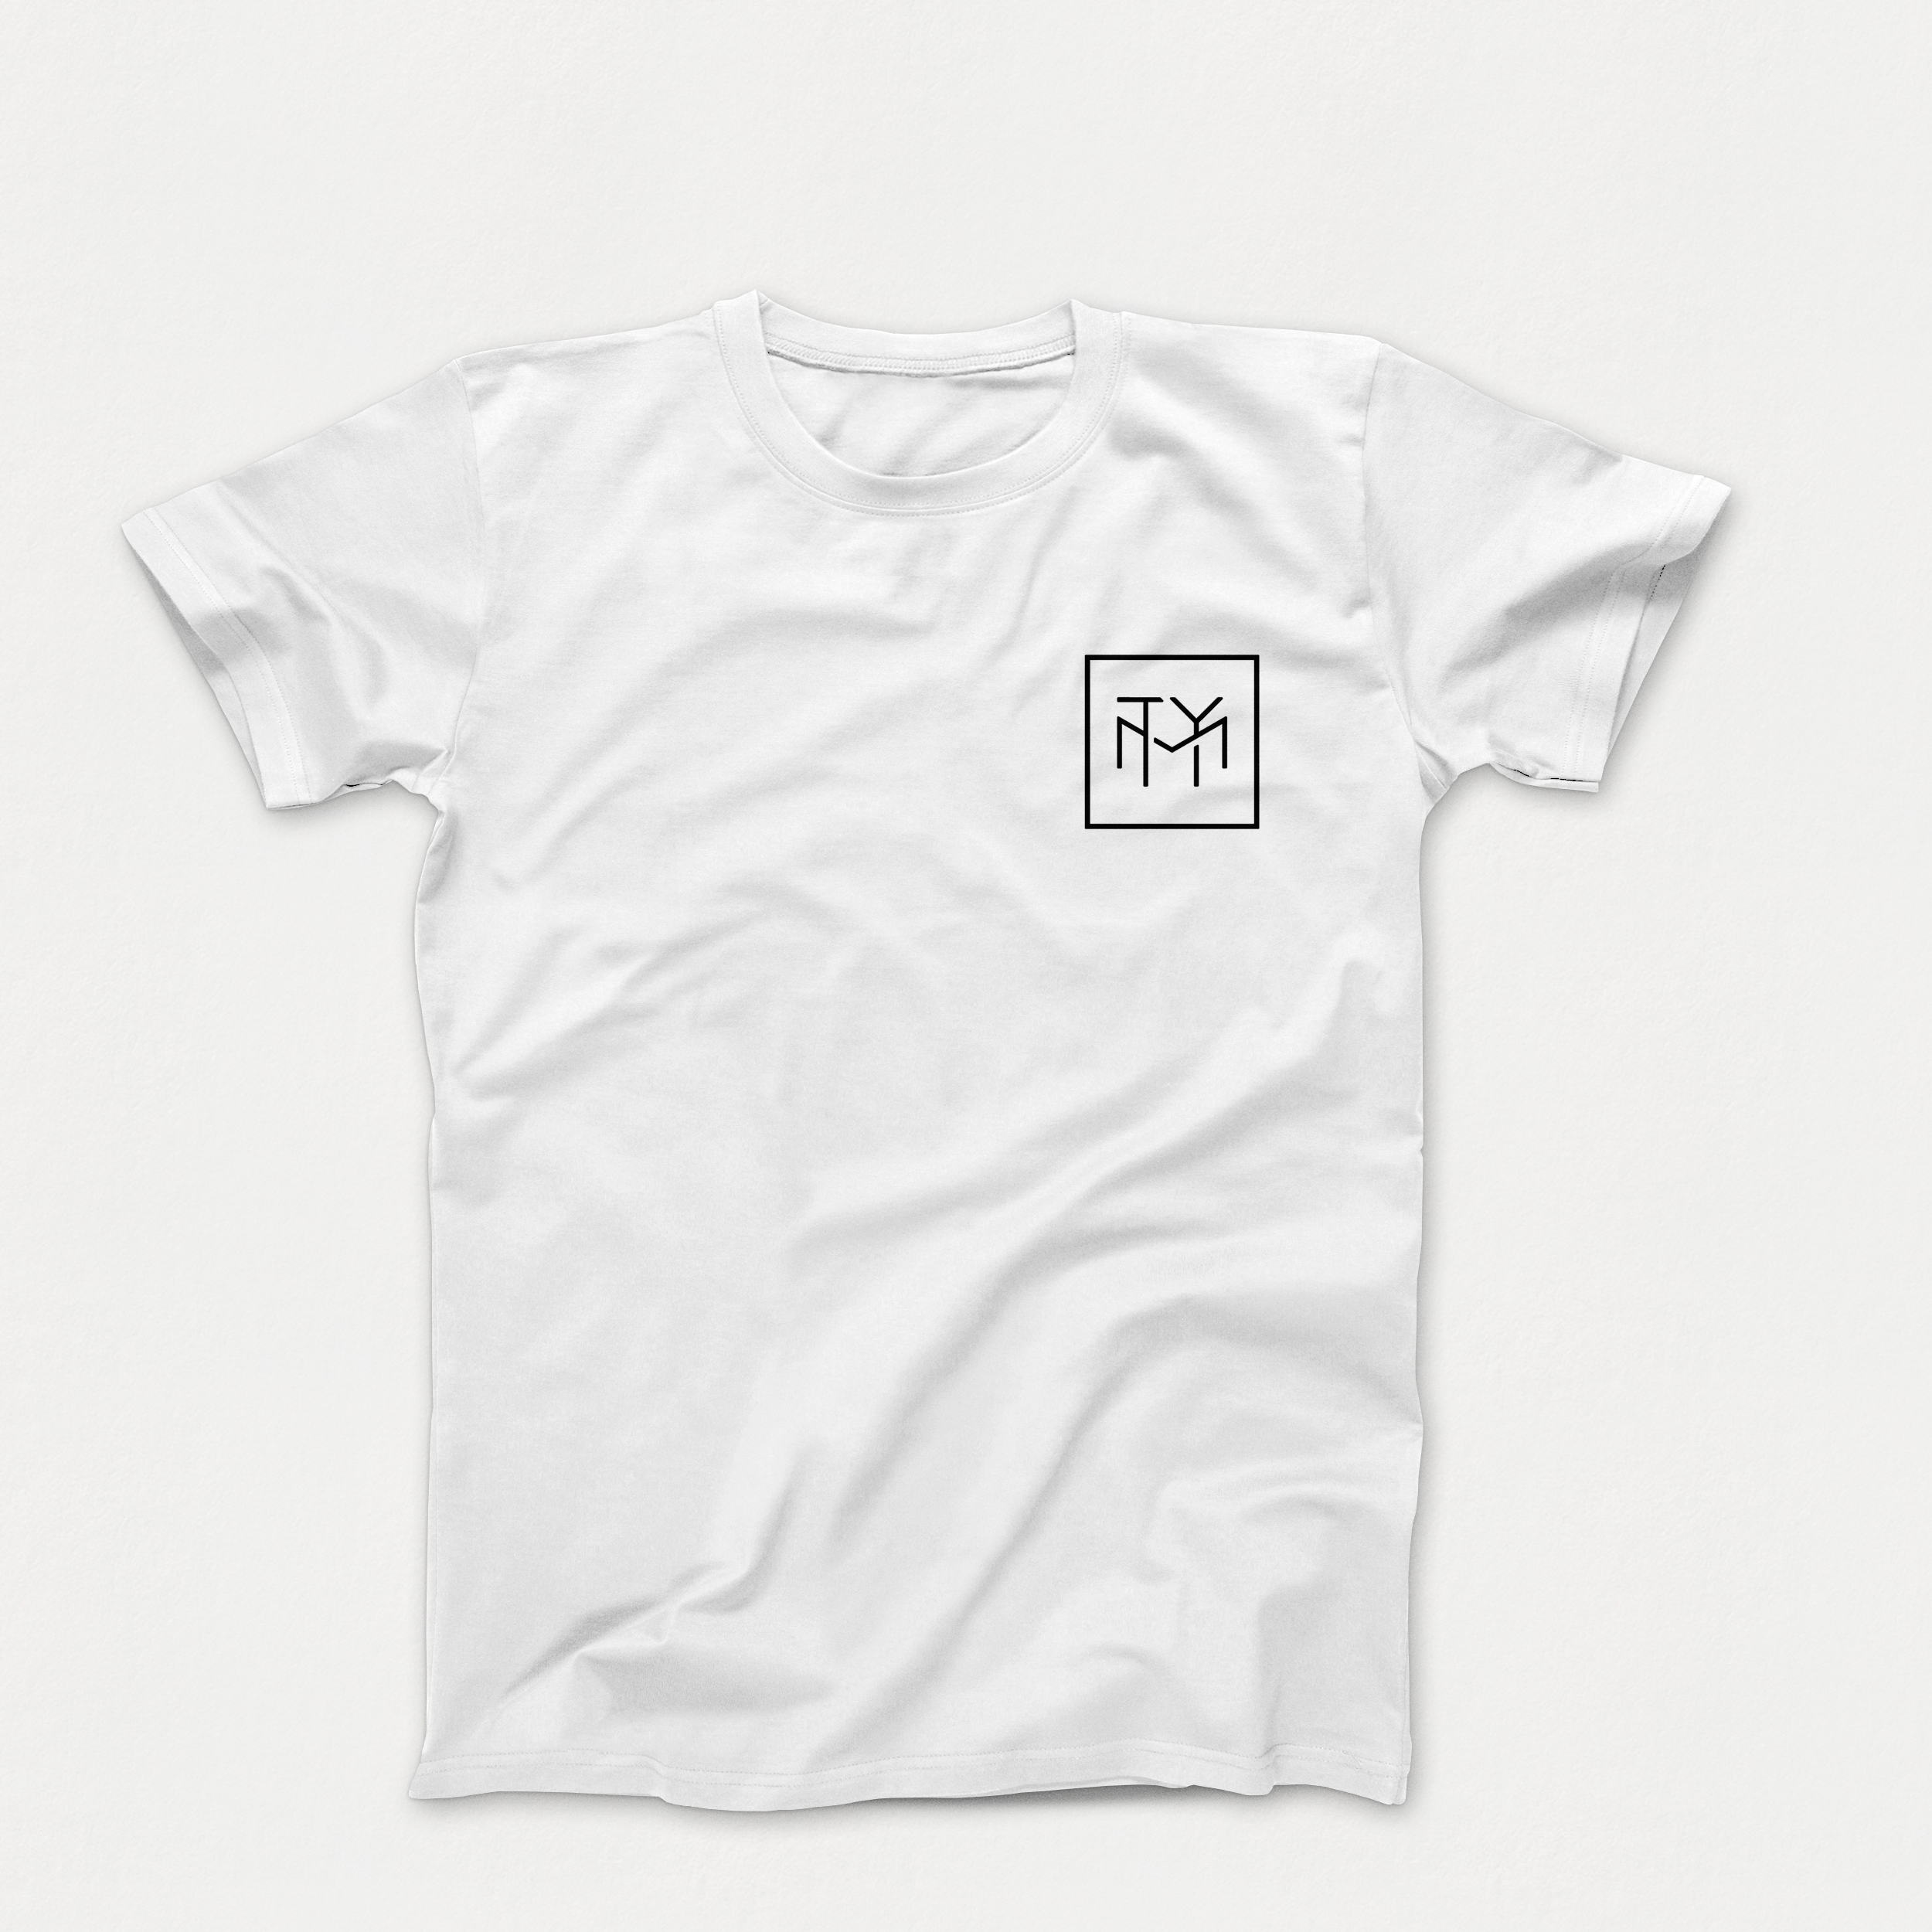 2500x2500 Embroidered Tmy T Shirt Tommey